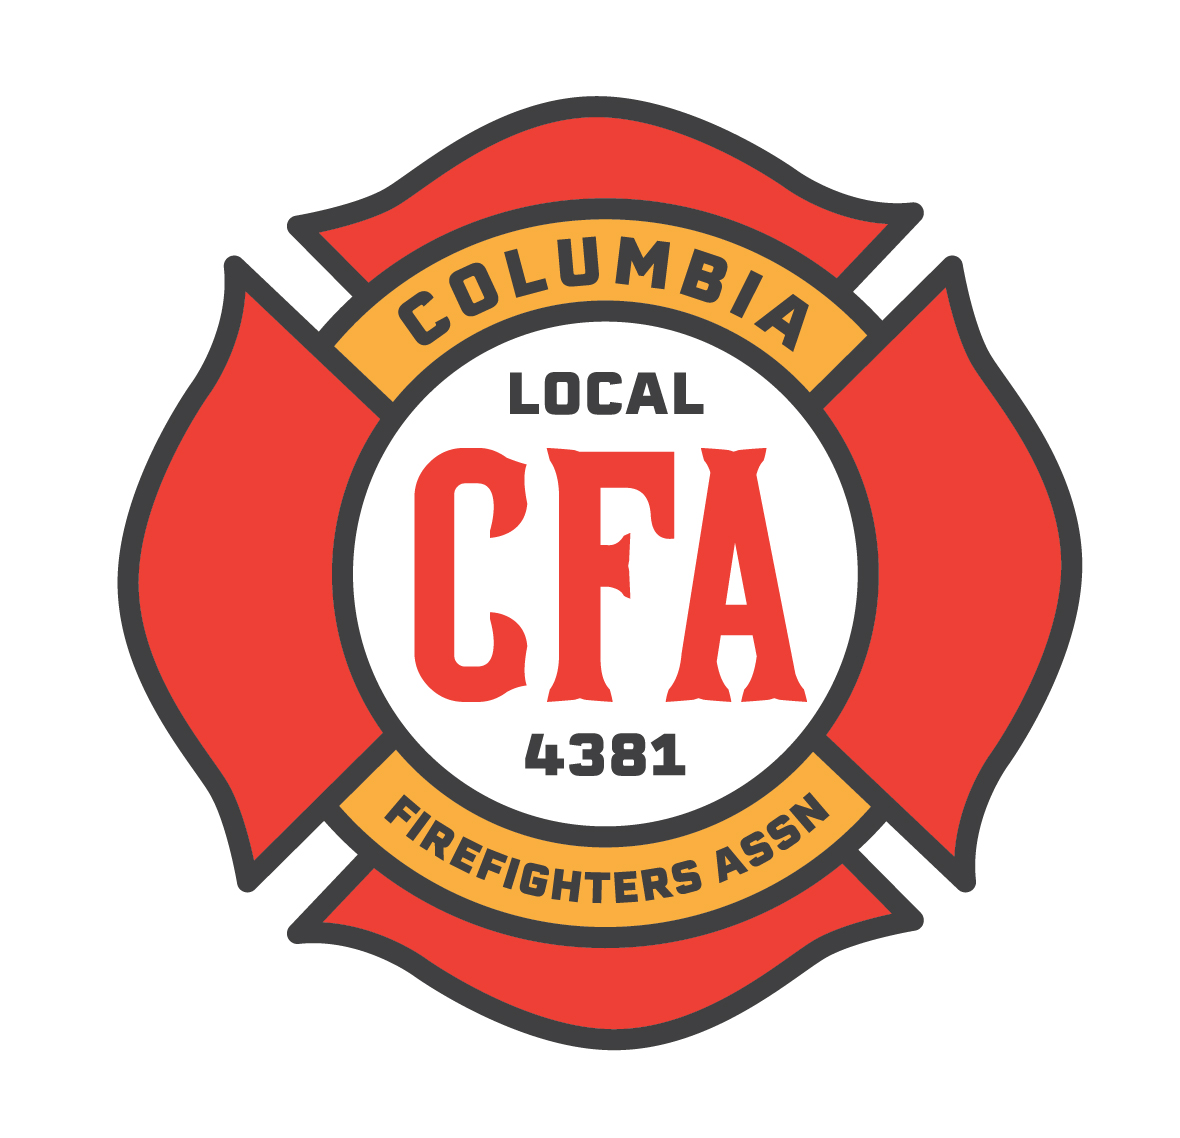 Columbia Firefighters Association